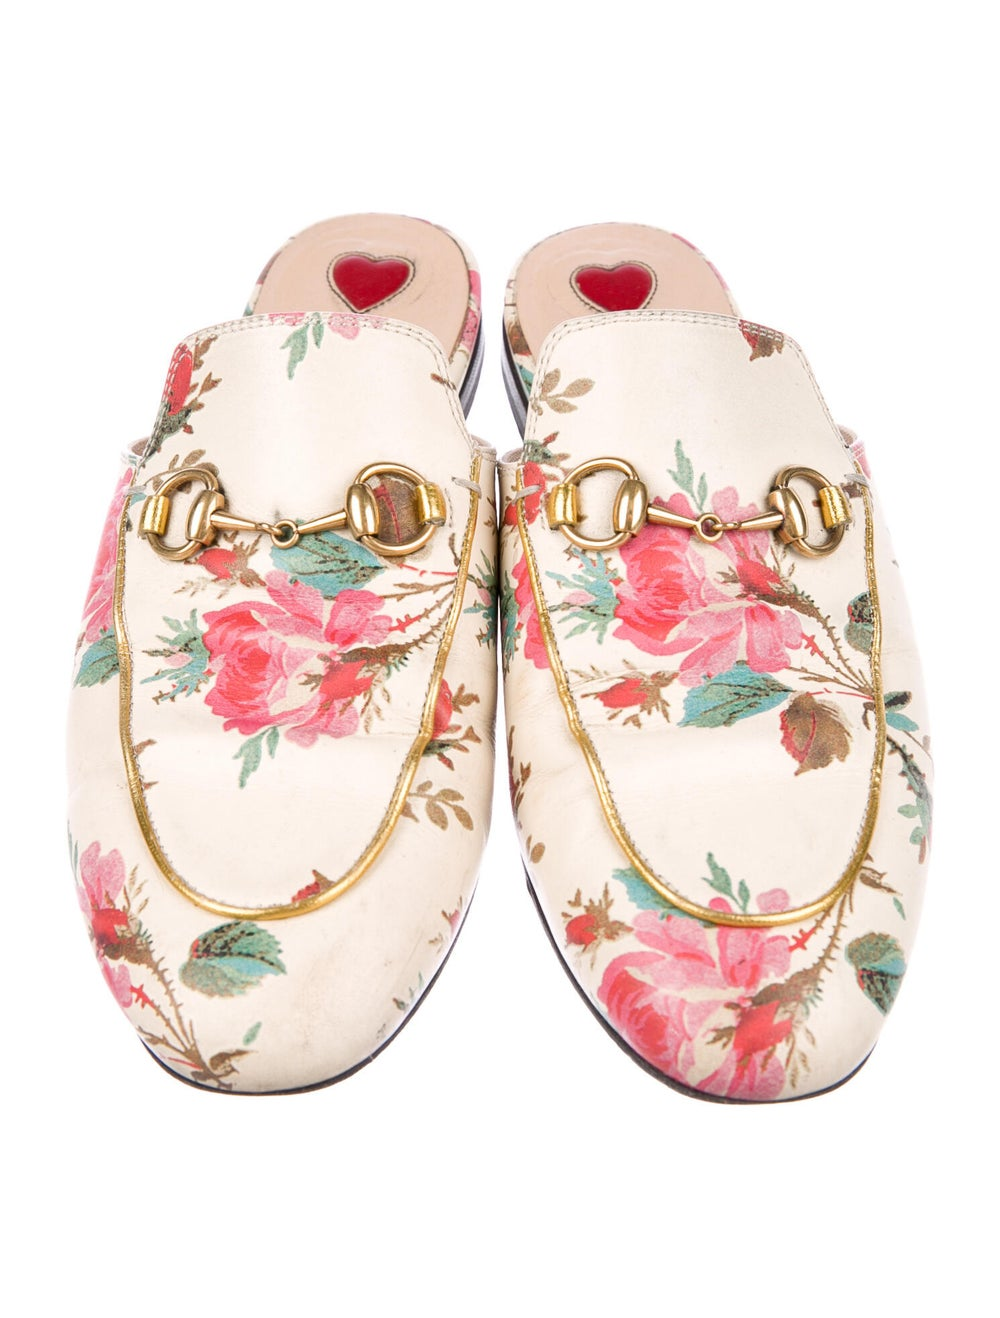 Gucci Princetown Floral Mules Leather Mules - image 3